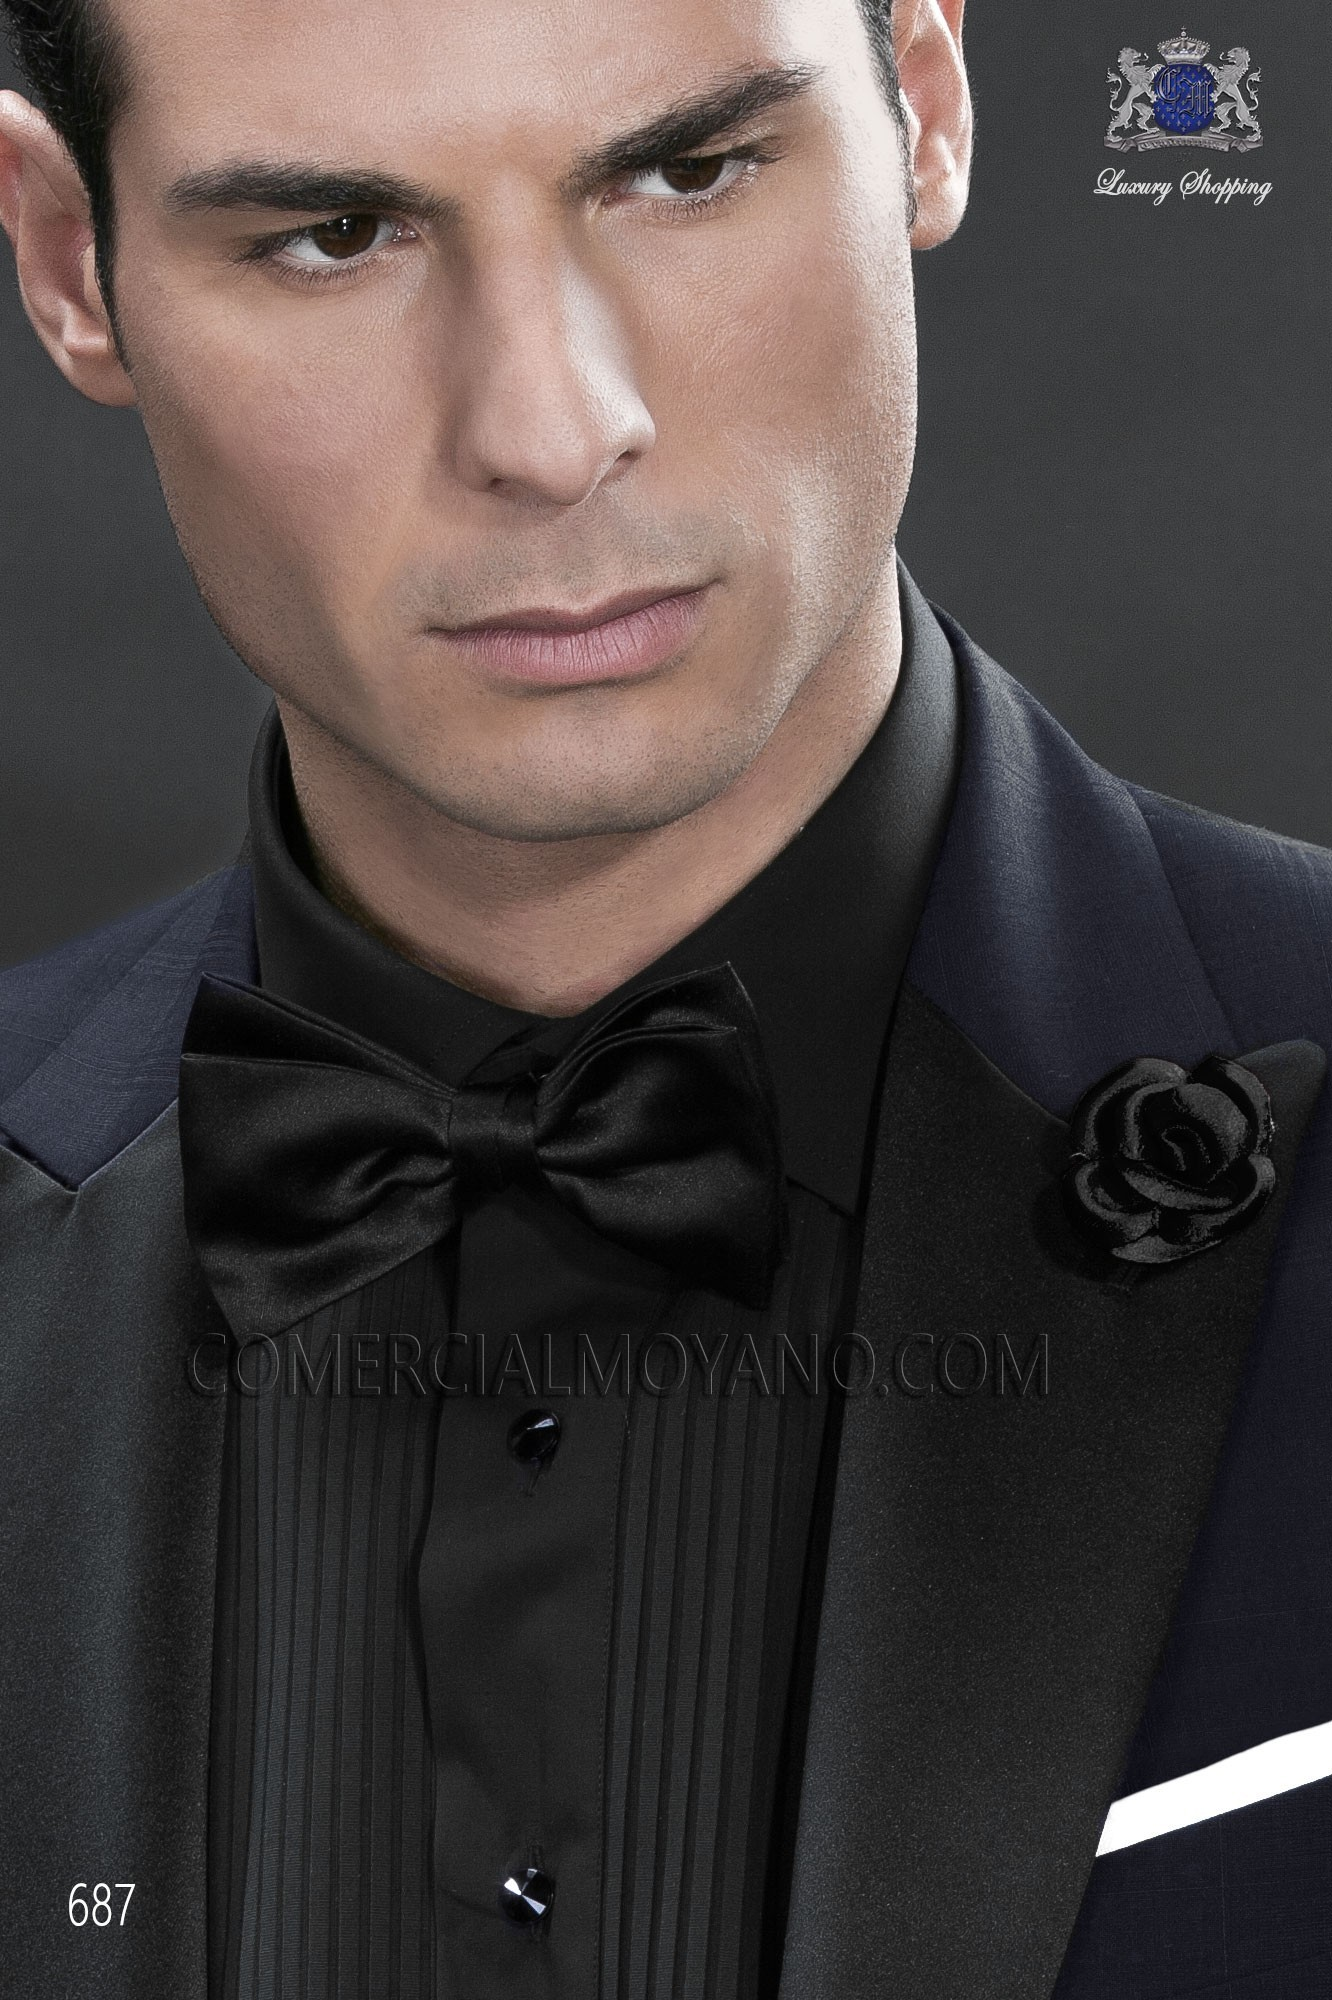 Italian blacktie blue men wedding suit, model: 687 Ottavio Nuccio Gala Black Tie Collection